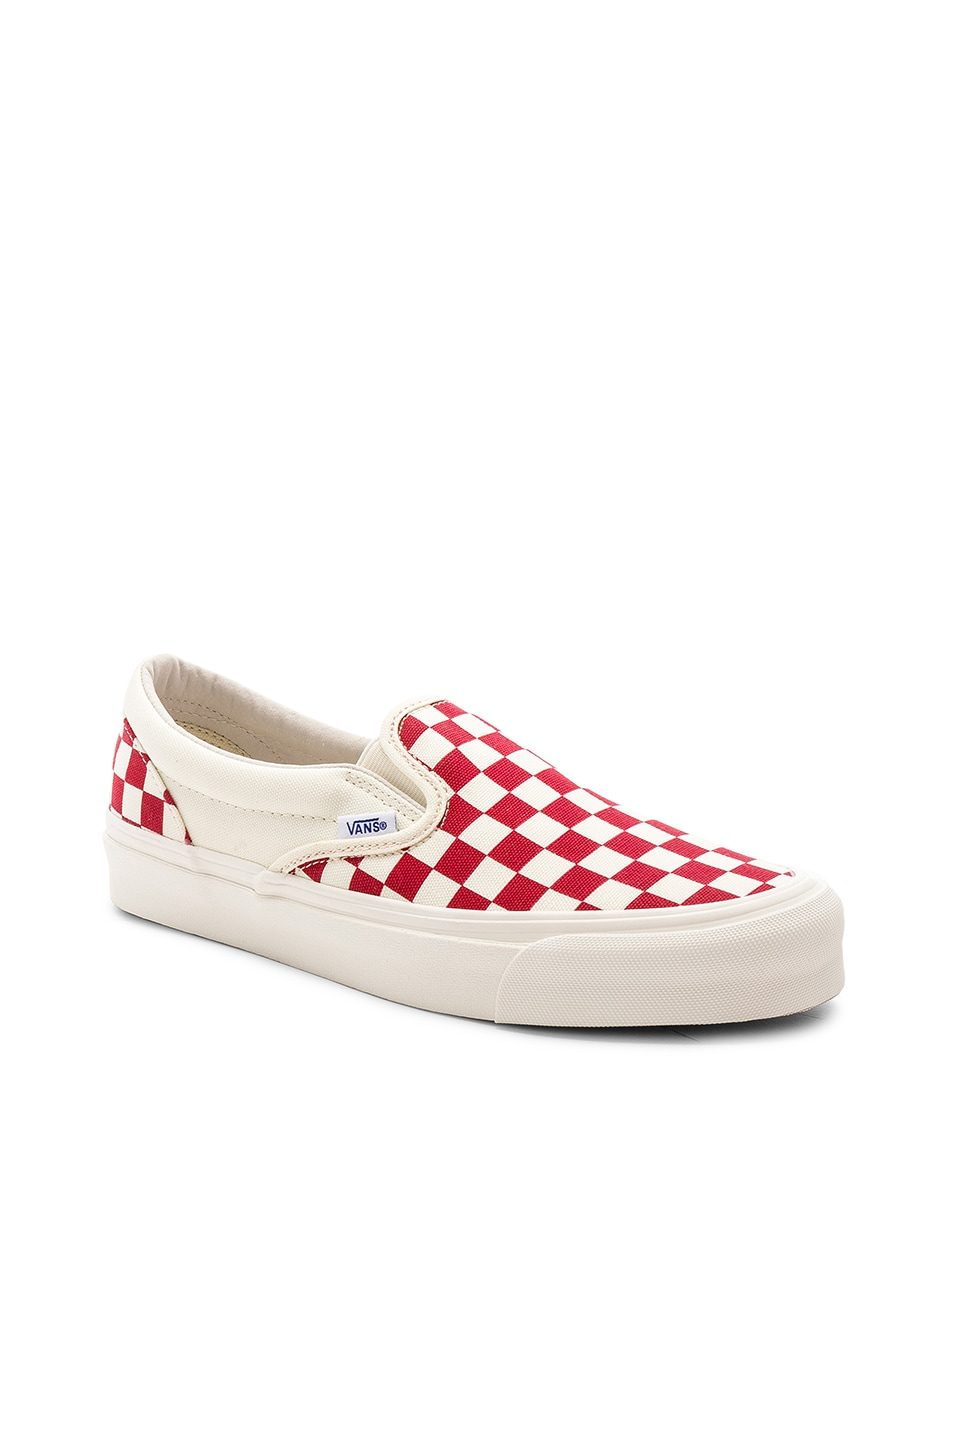 Image 1 of Vans Vault OG Classic Canvas Slip-Ons LX in White & Red